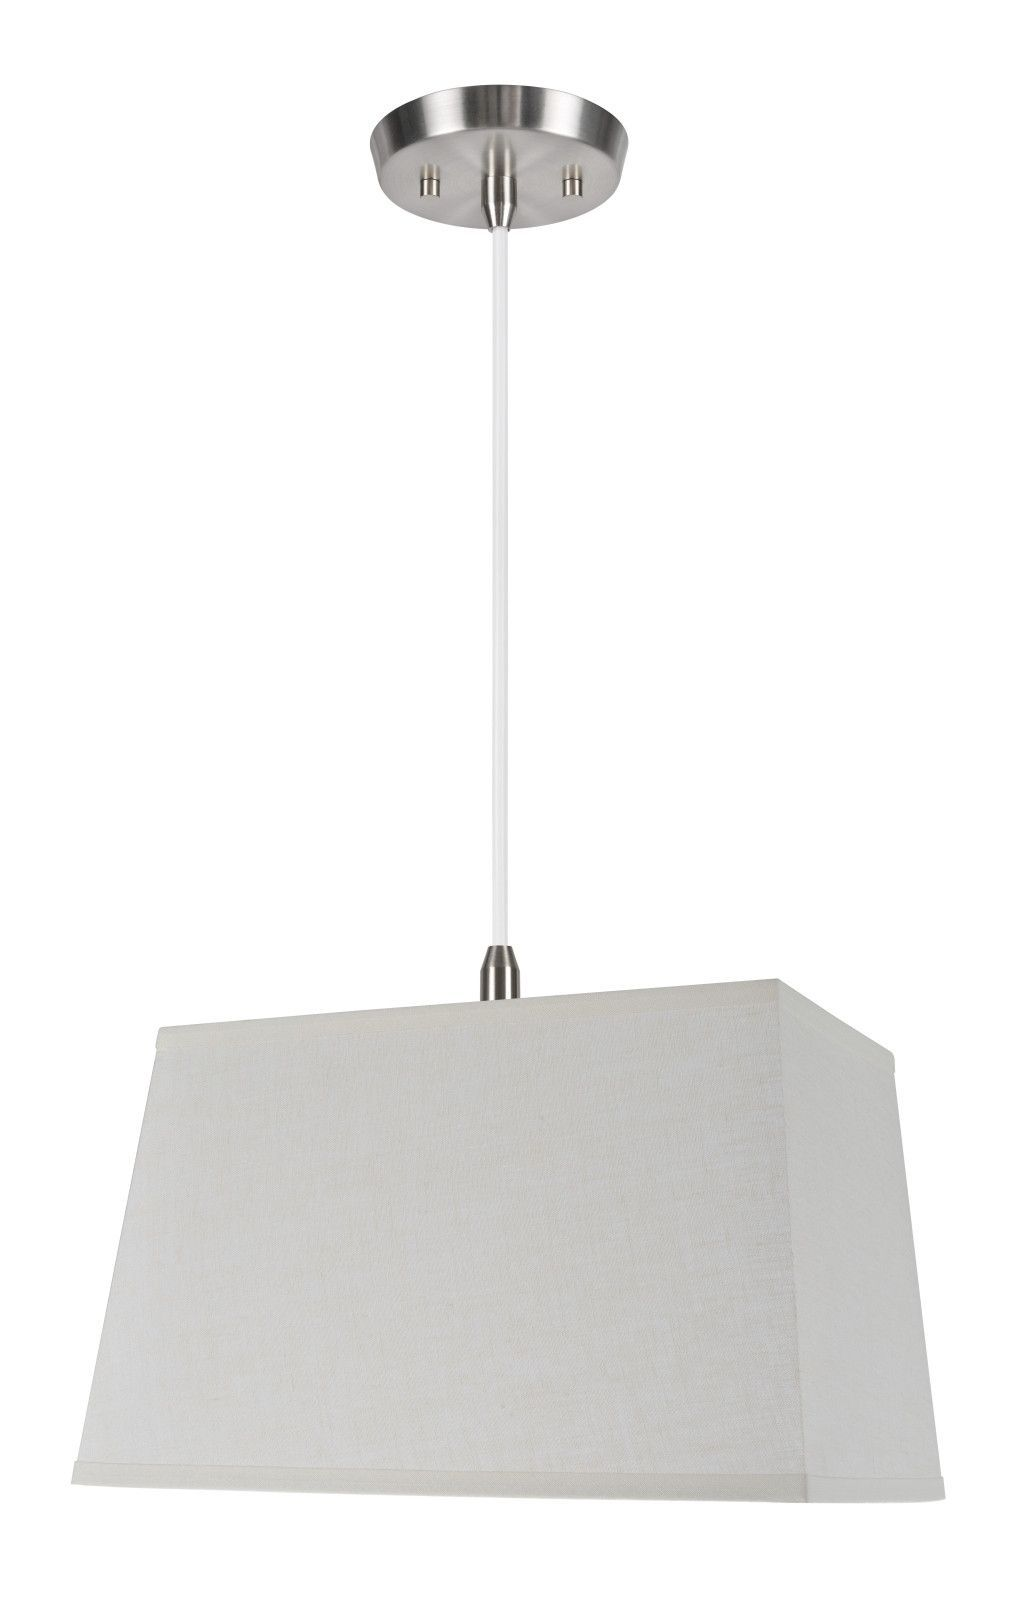 72037 1 Light Hanging Pendant Ceiling Light With Transitional